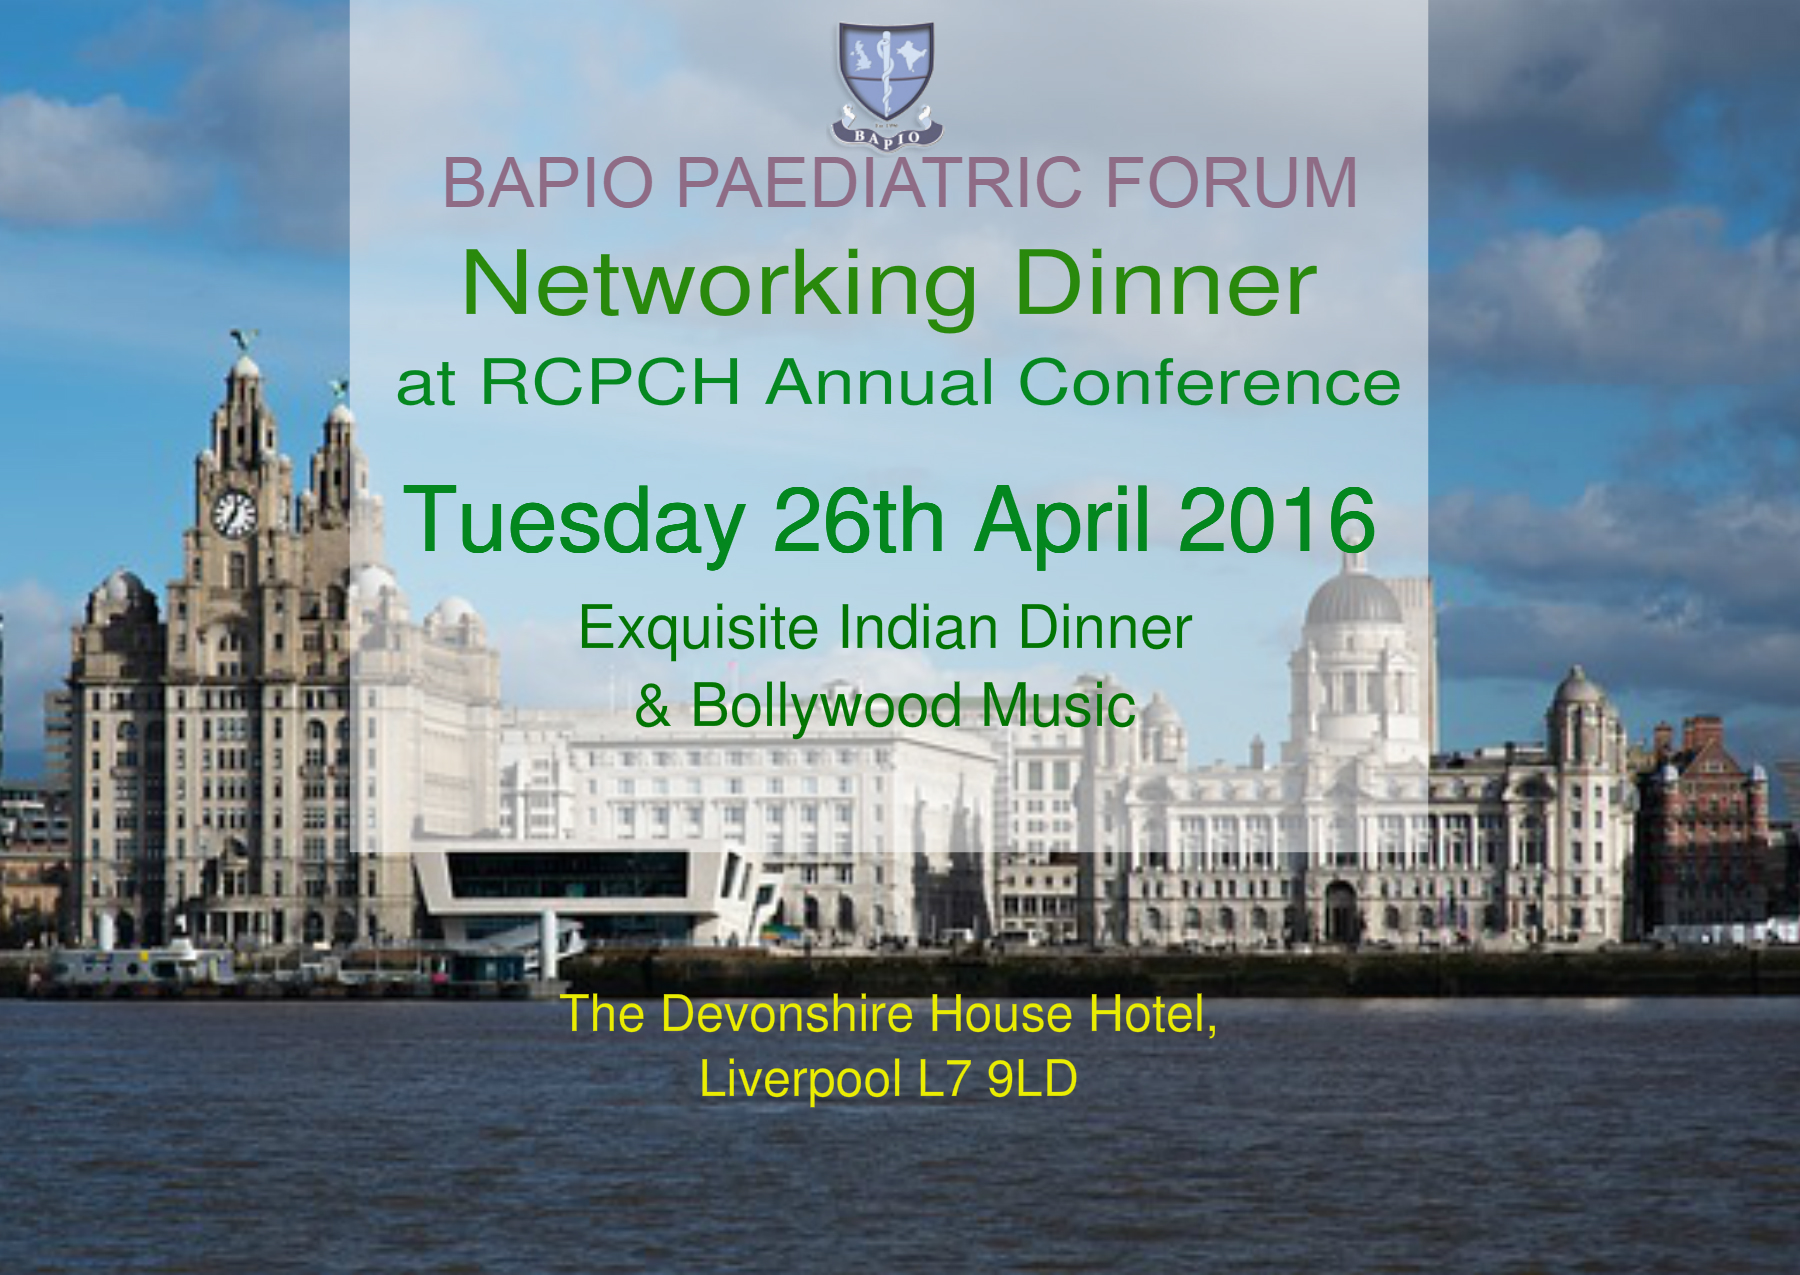 BAPIO Paediatric Forum Networking Gala Dinner Banner